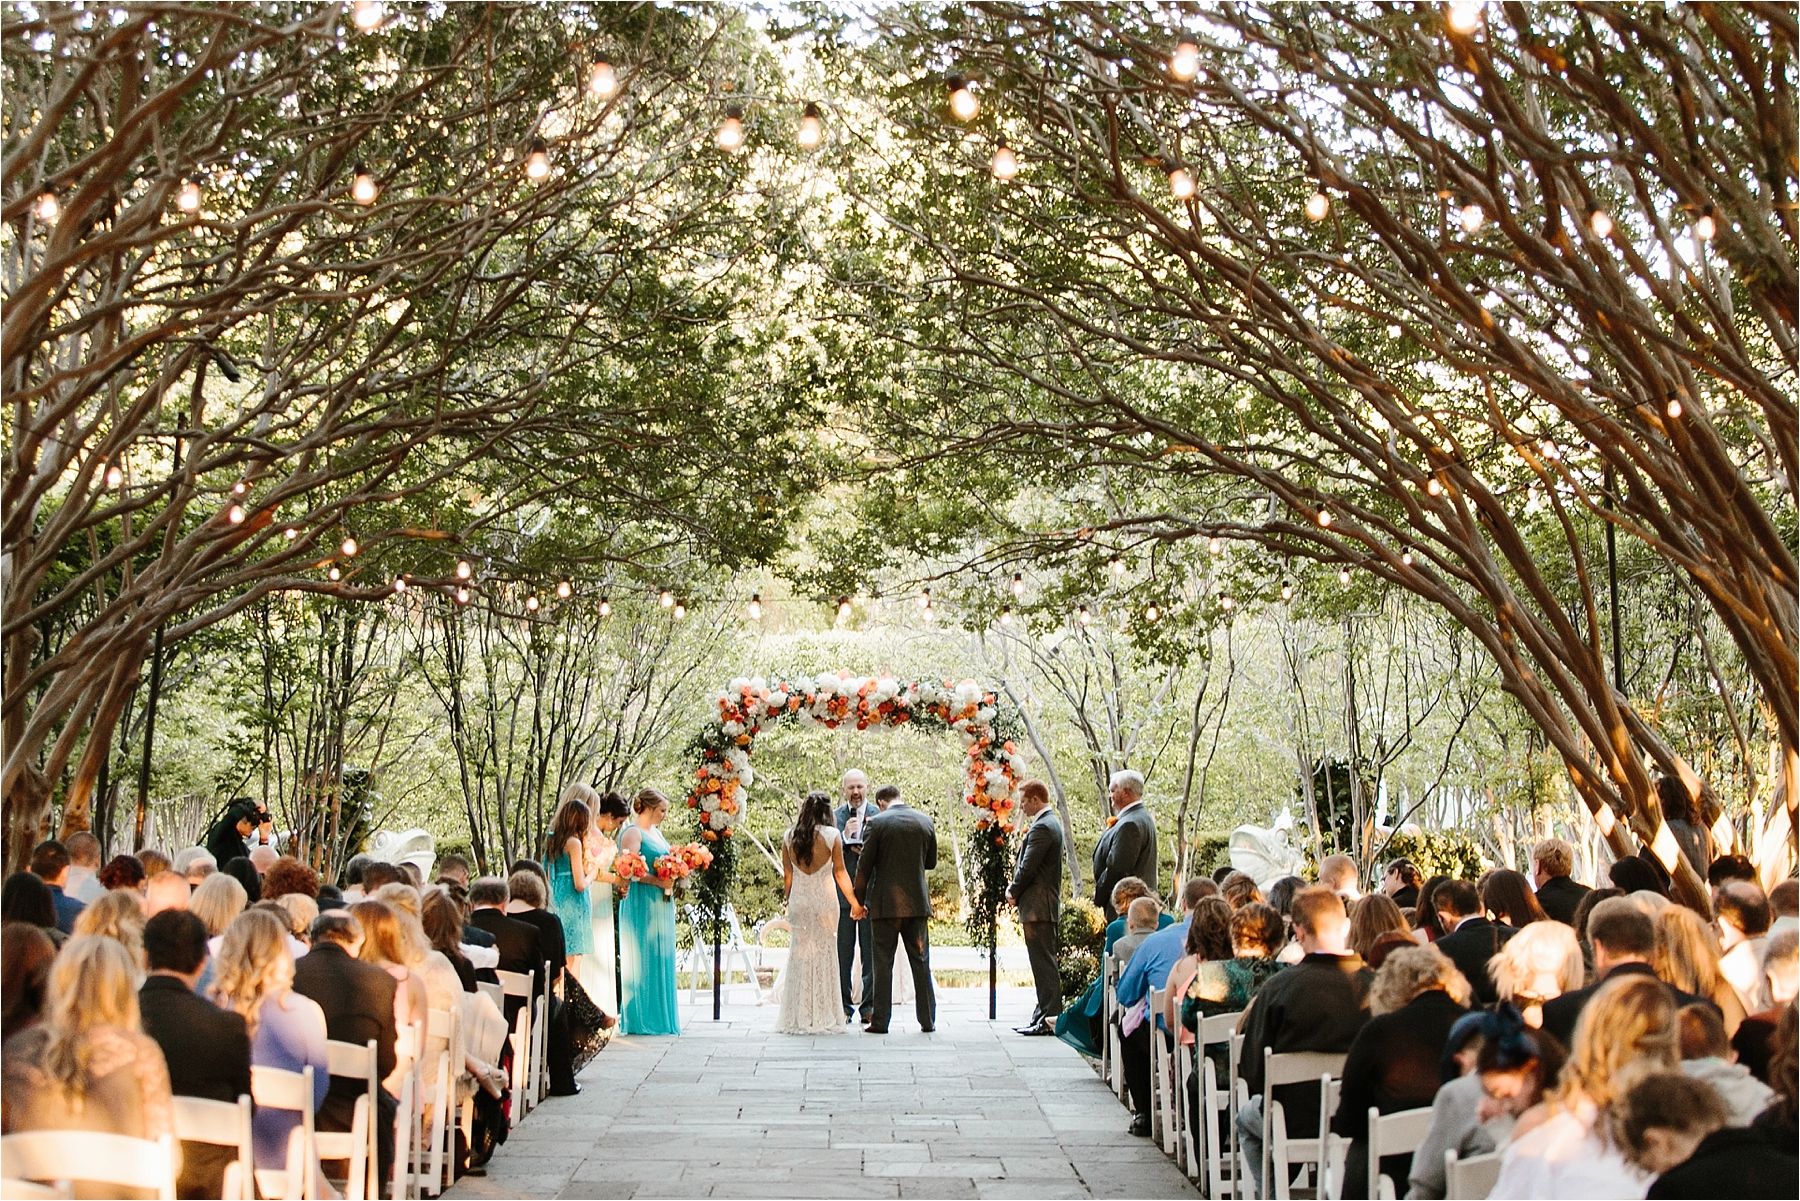 Devyn + Caden __ a Dallas Arboretum Garden Style Wedding by North Texas Wedding Photographer Rachel Meagan Photography __ 095